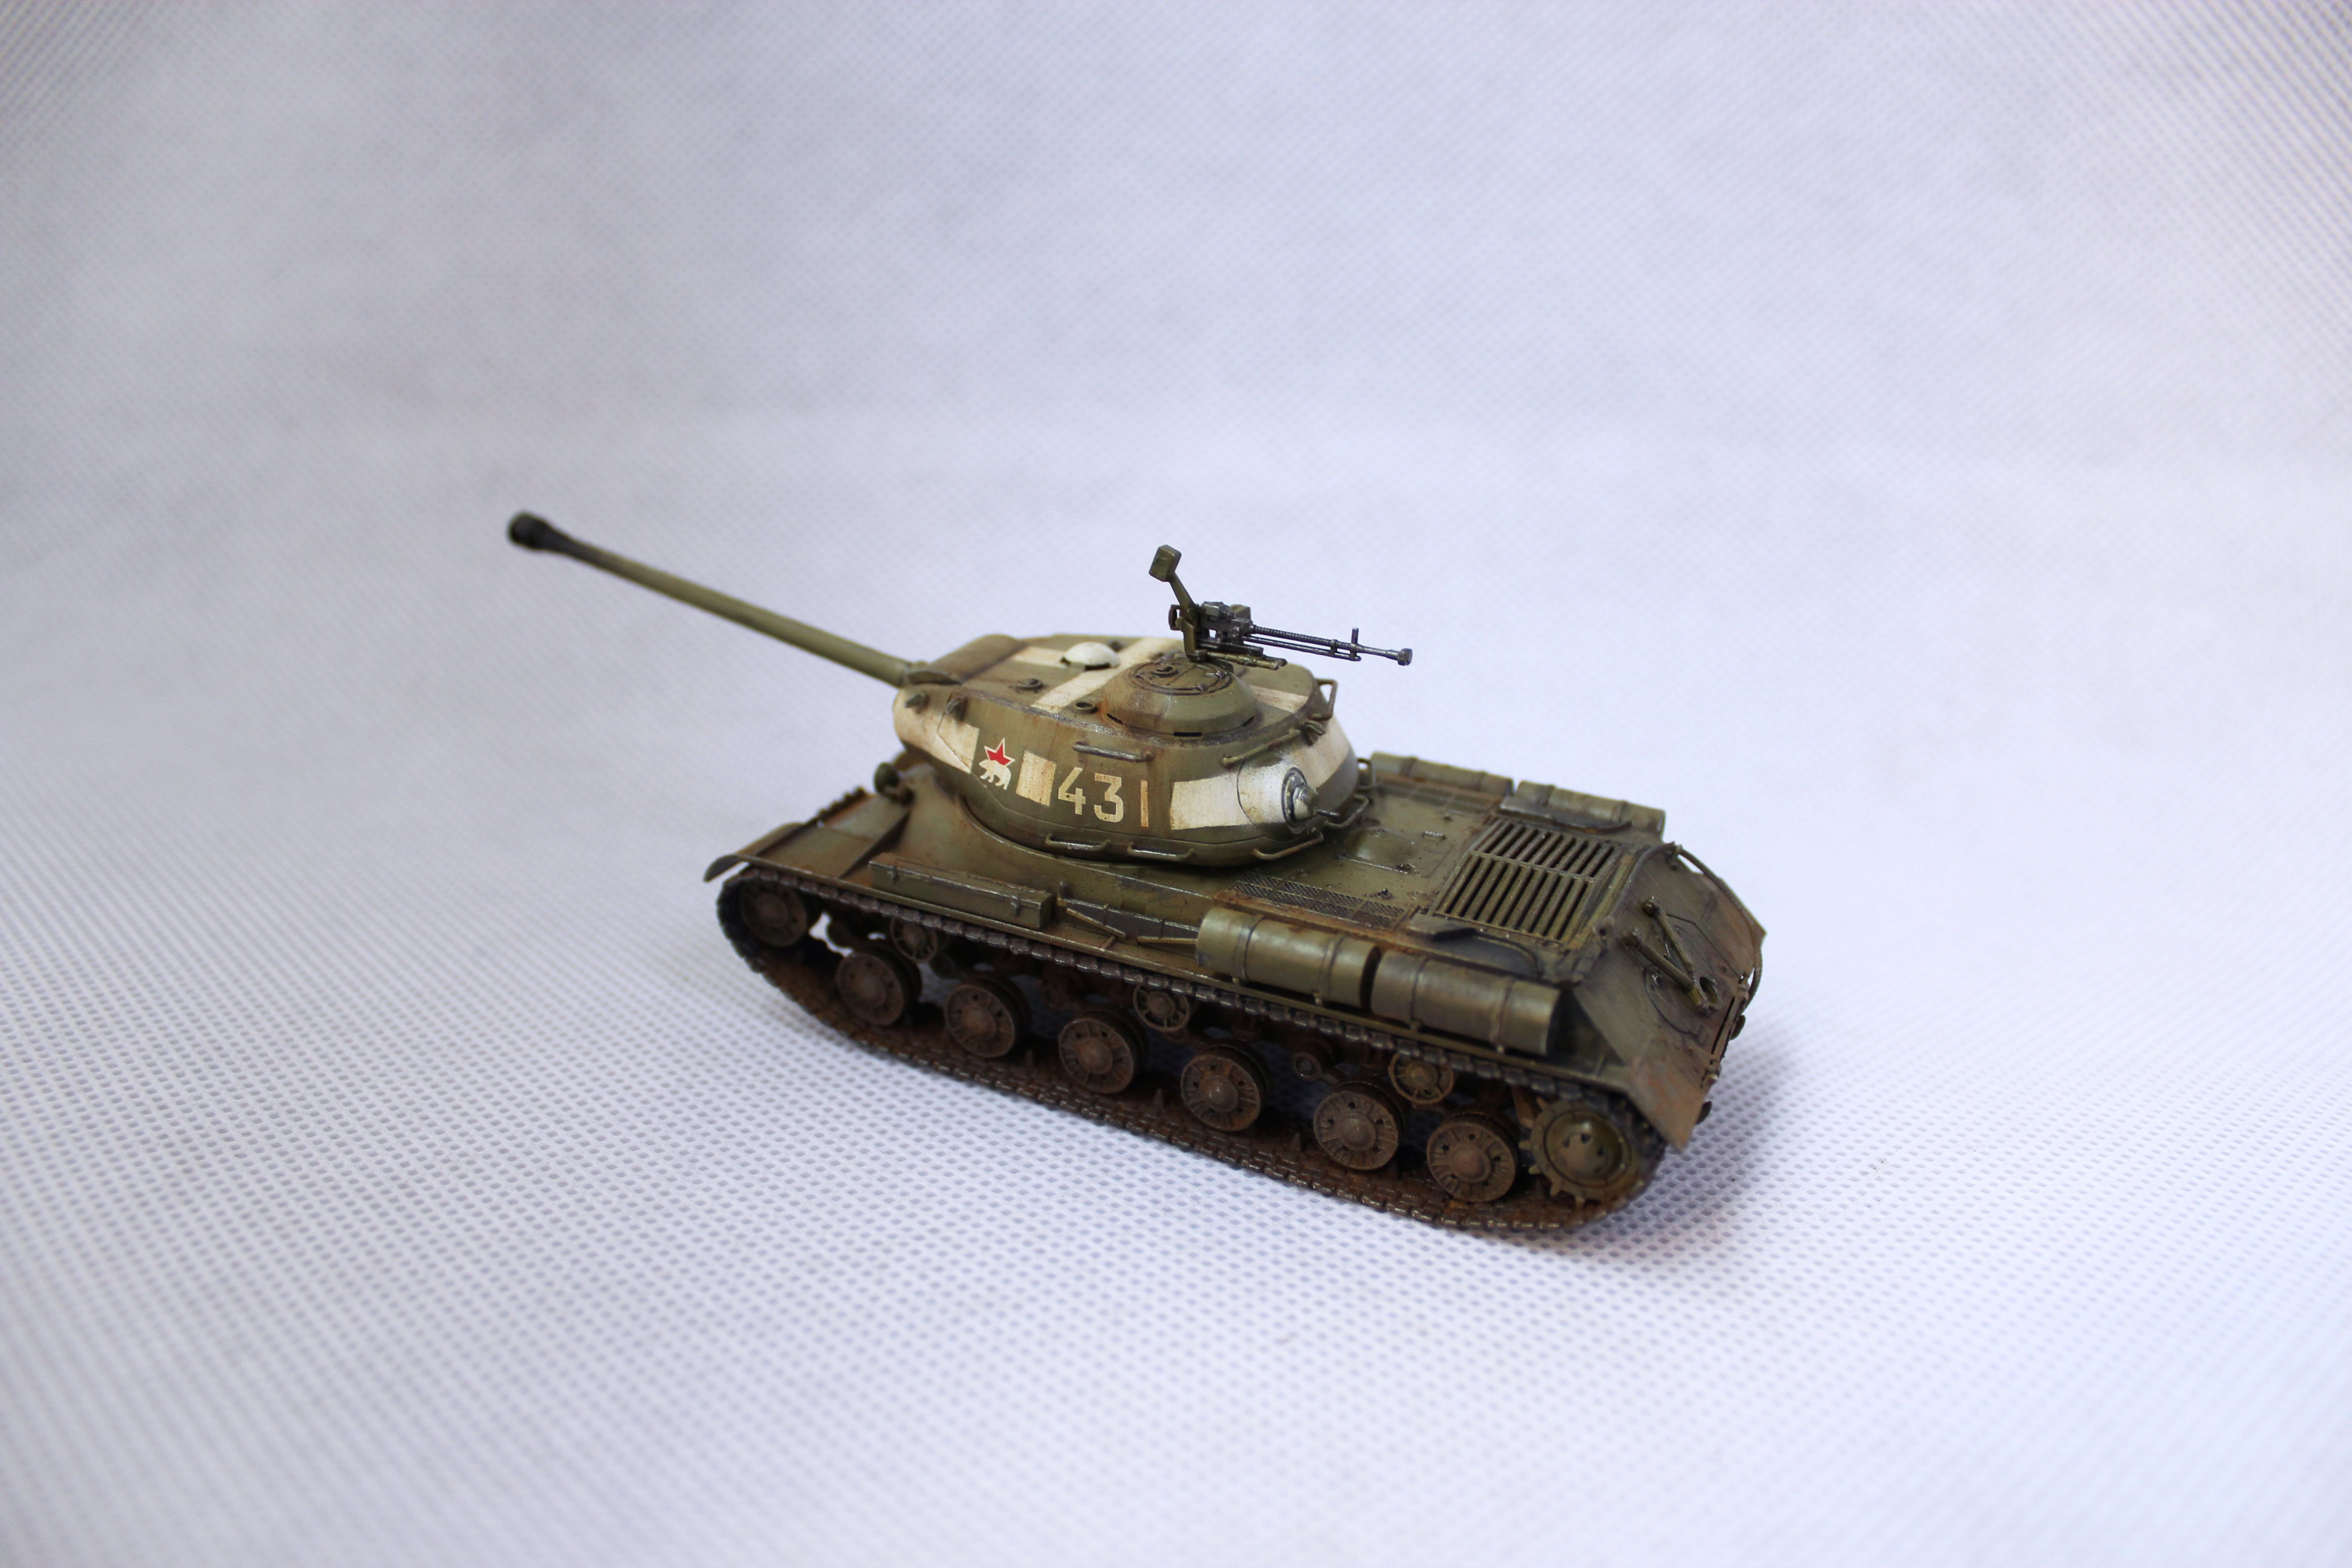 Zvezda Is 2 Mod 1944 1 72 Scale Models My Works Military Vehicles